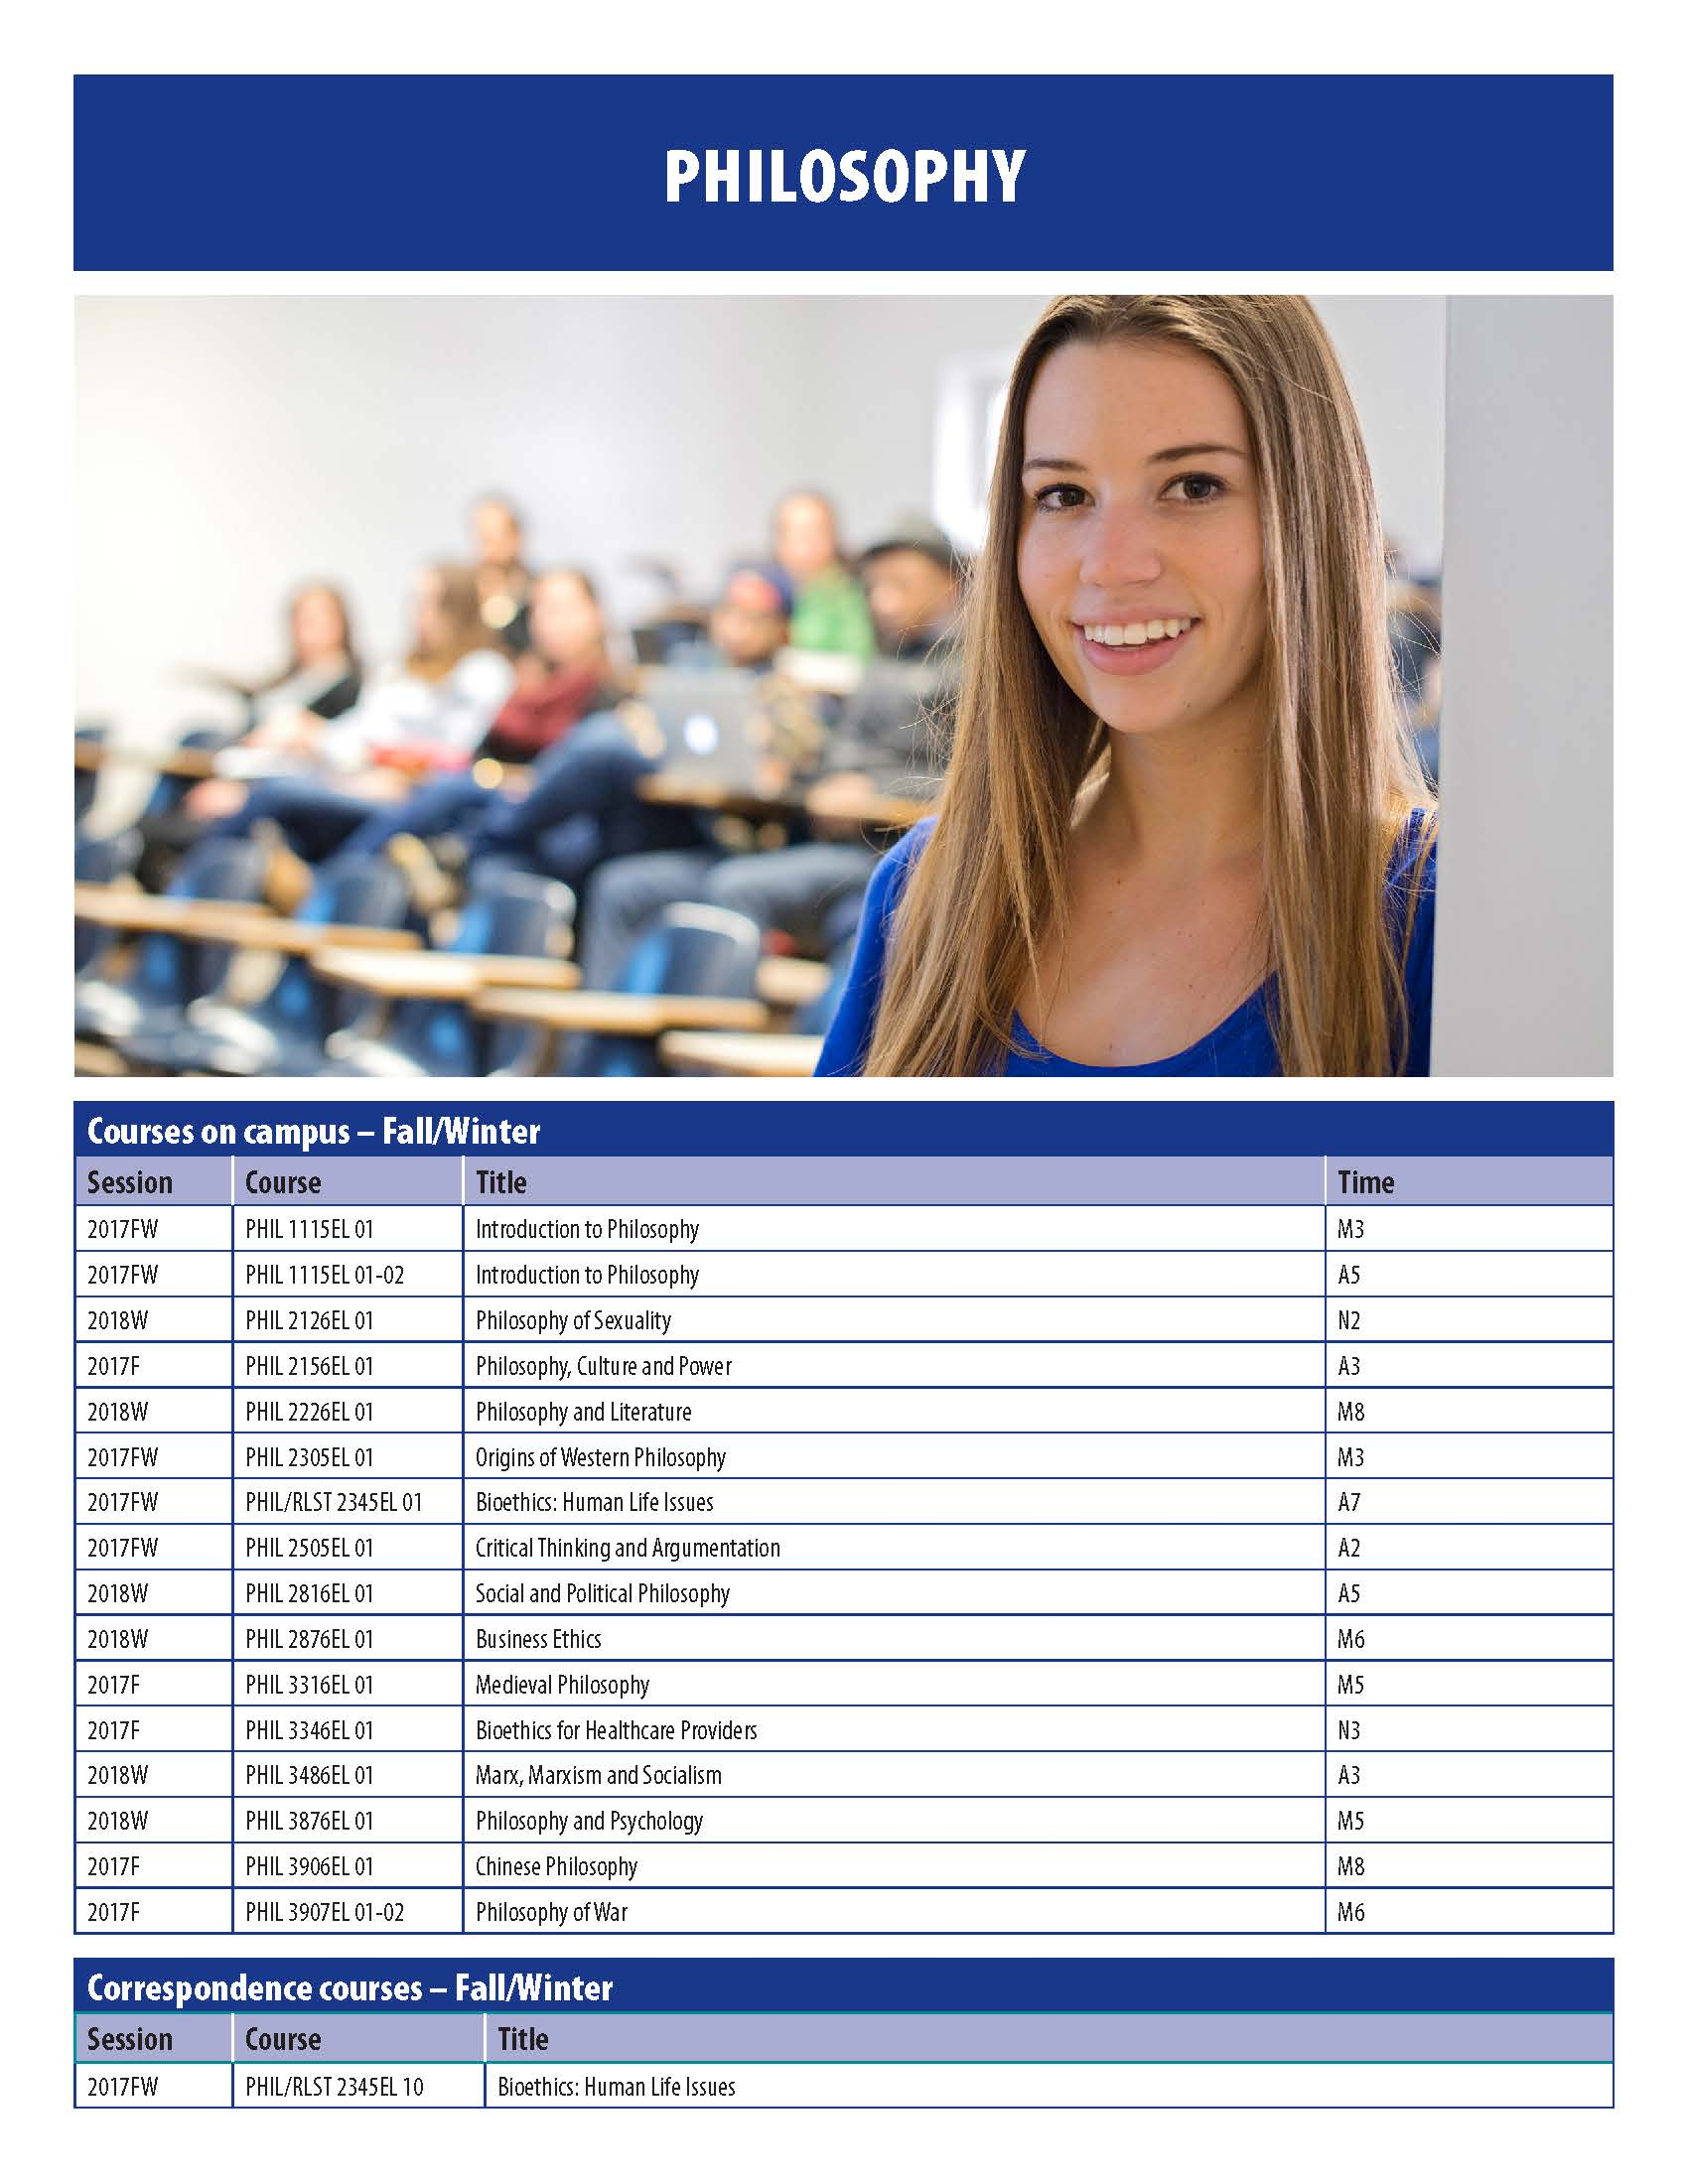 US CourseTimetable September 2017 Page 07